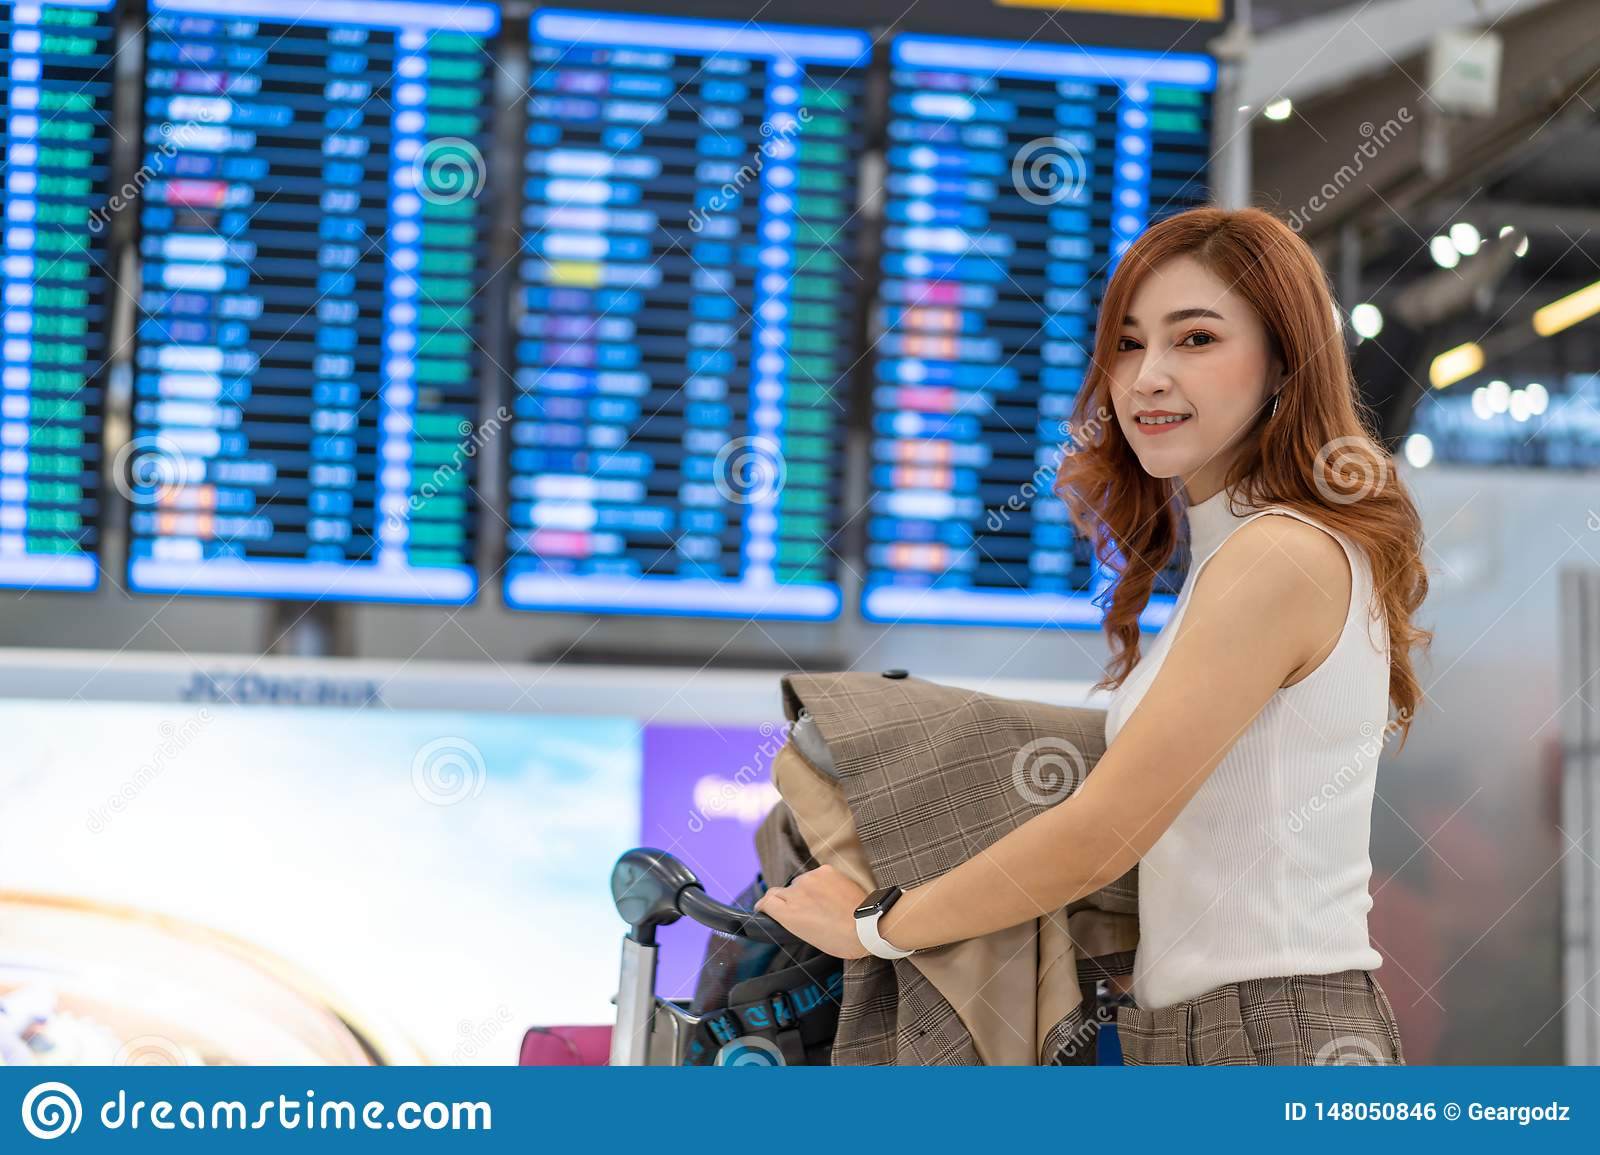 Woman waiting for flight with information board in airport